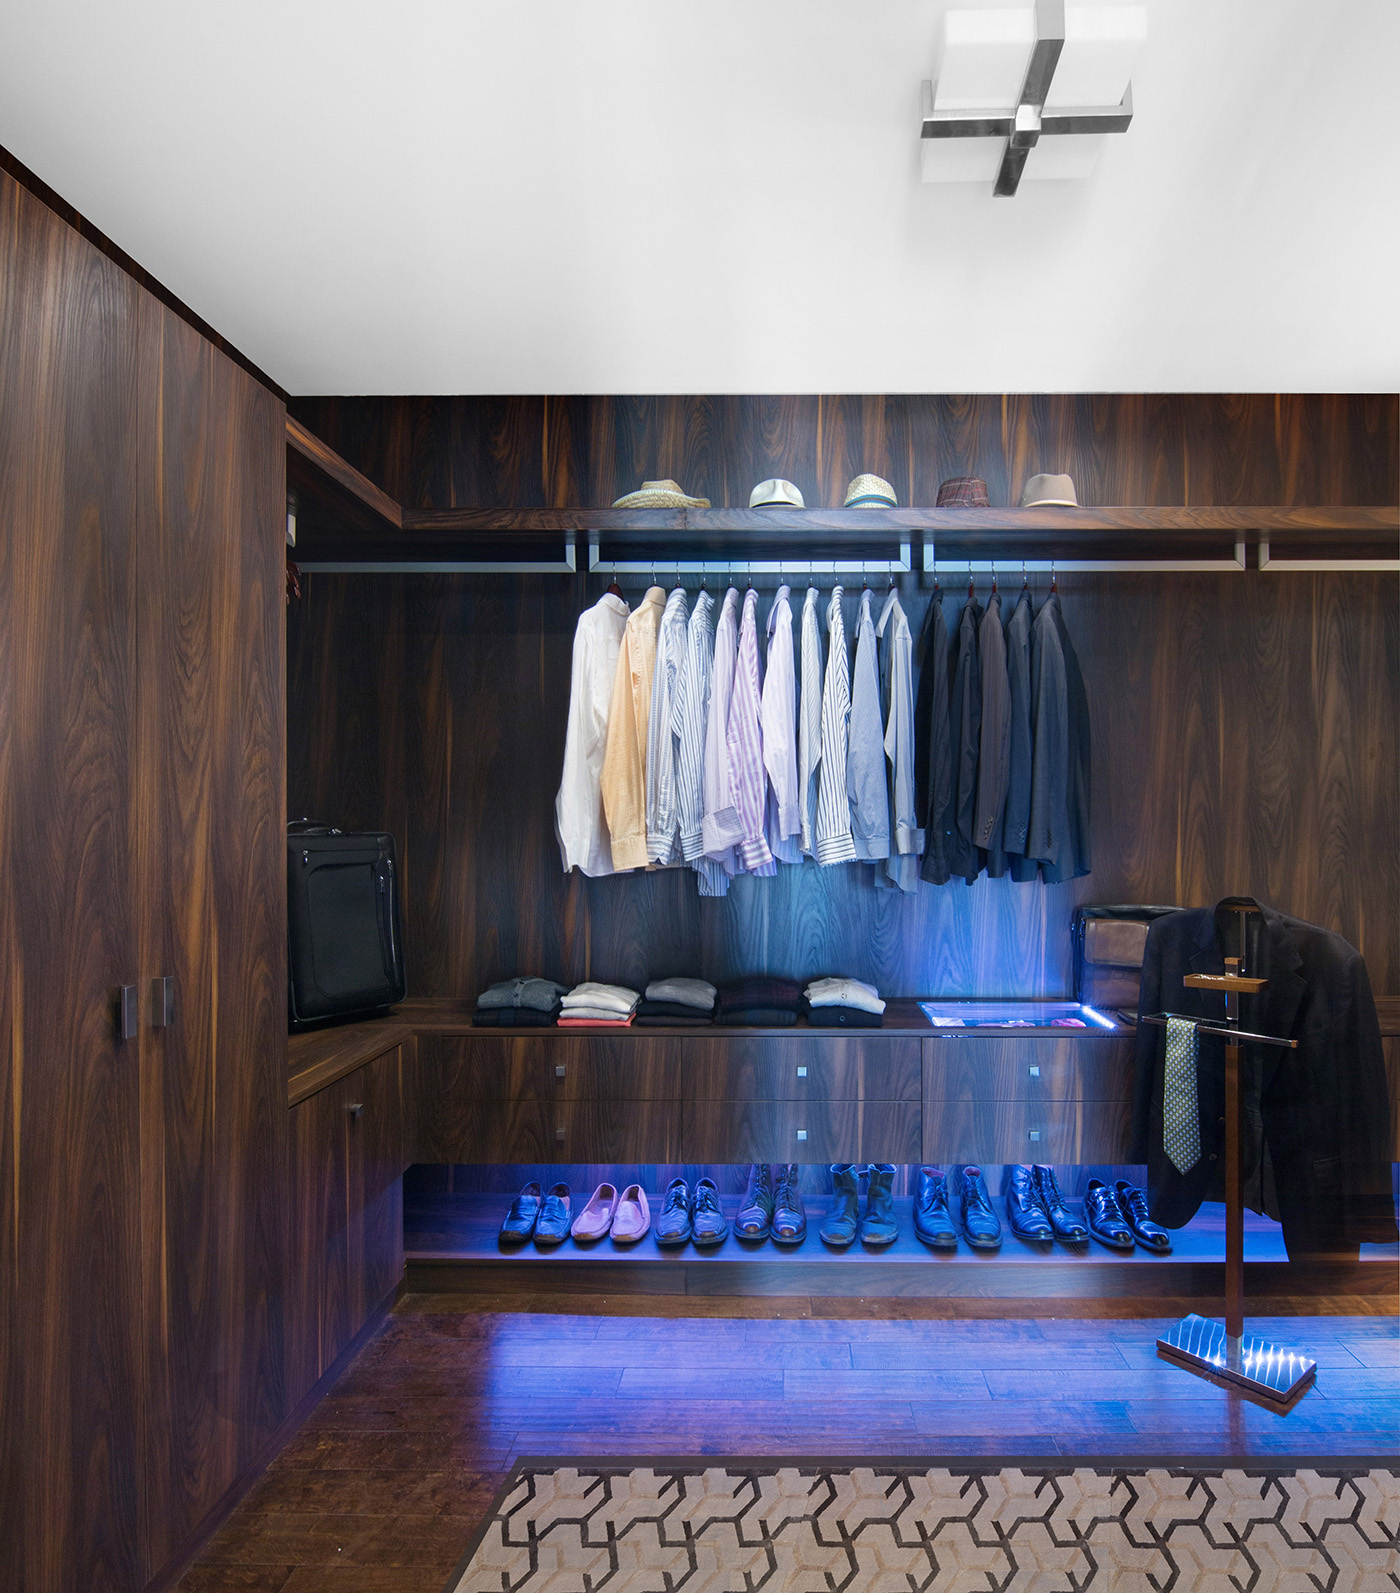 Men's walk in closet design idea by celebrity designer Lori Dennis